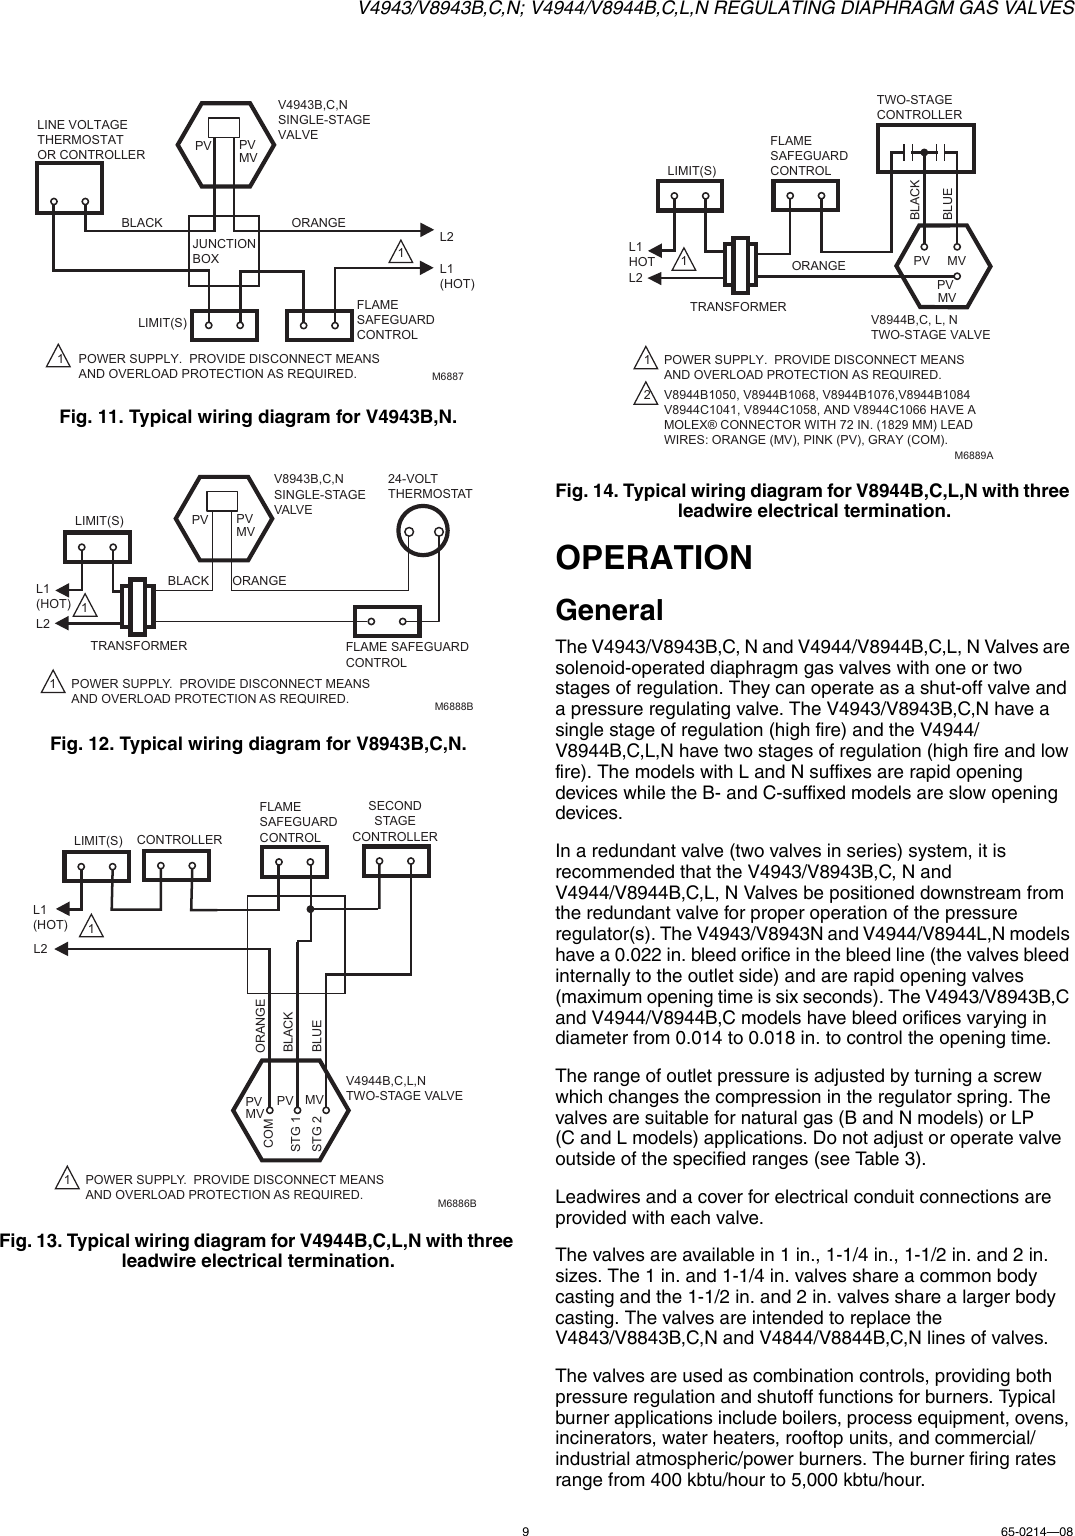 Honeywell Thermostat V4944 Users Manual 65 021408 V4943 V8943bcn Two Stage Wiring Diagram Page 9 Of 12